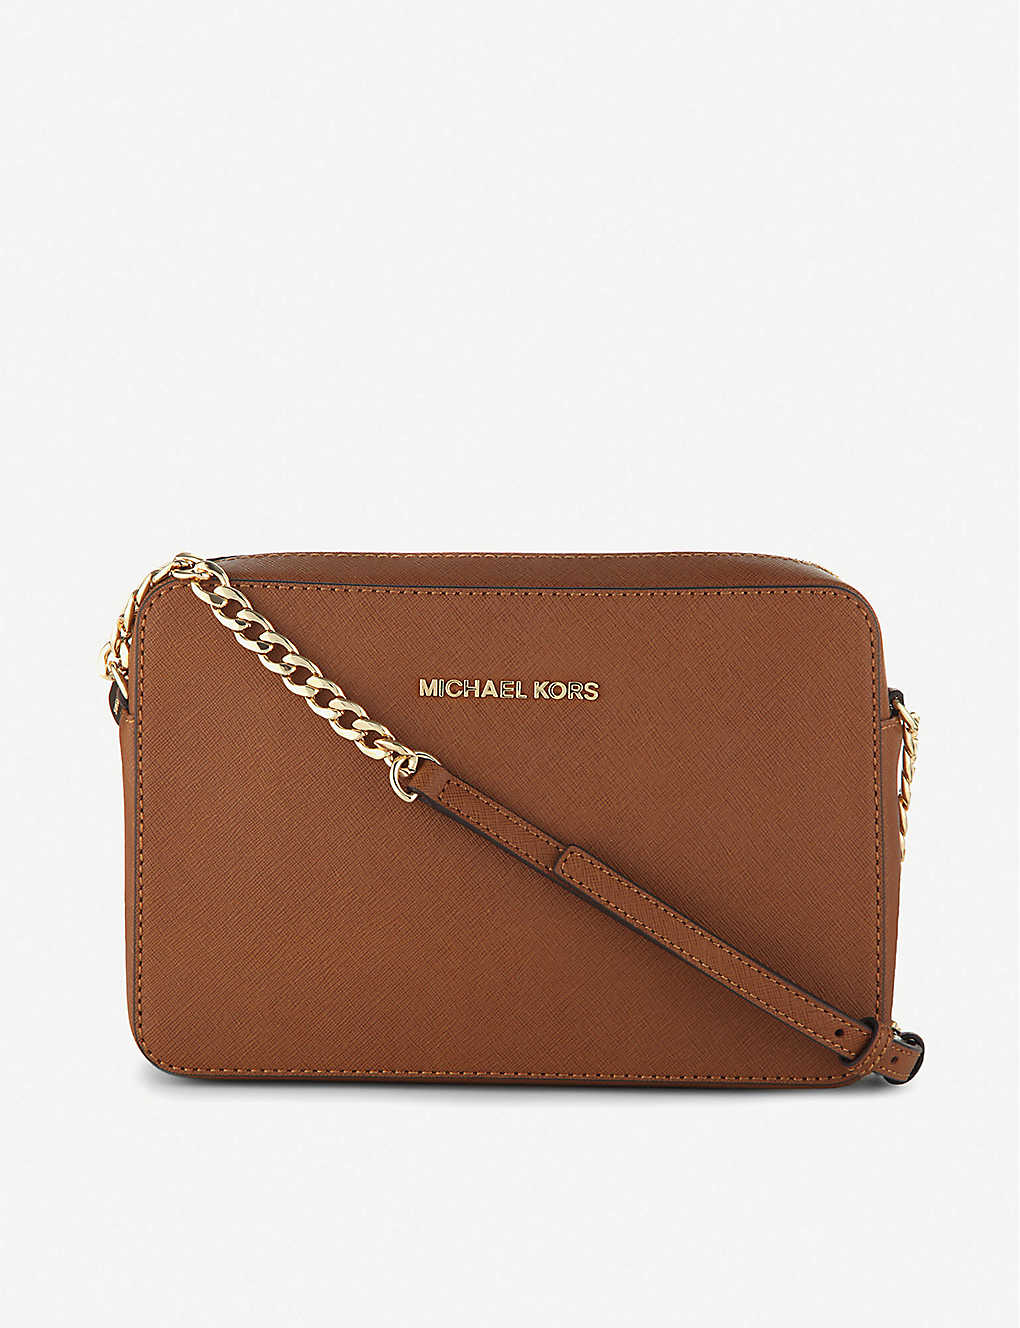 090e1dbab MICHAEL MICHAEL KORS - Saffiano leather cross-body bag | Selfridges.com